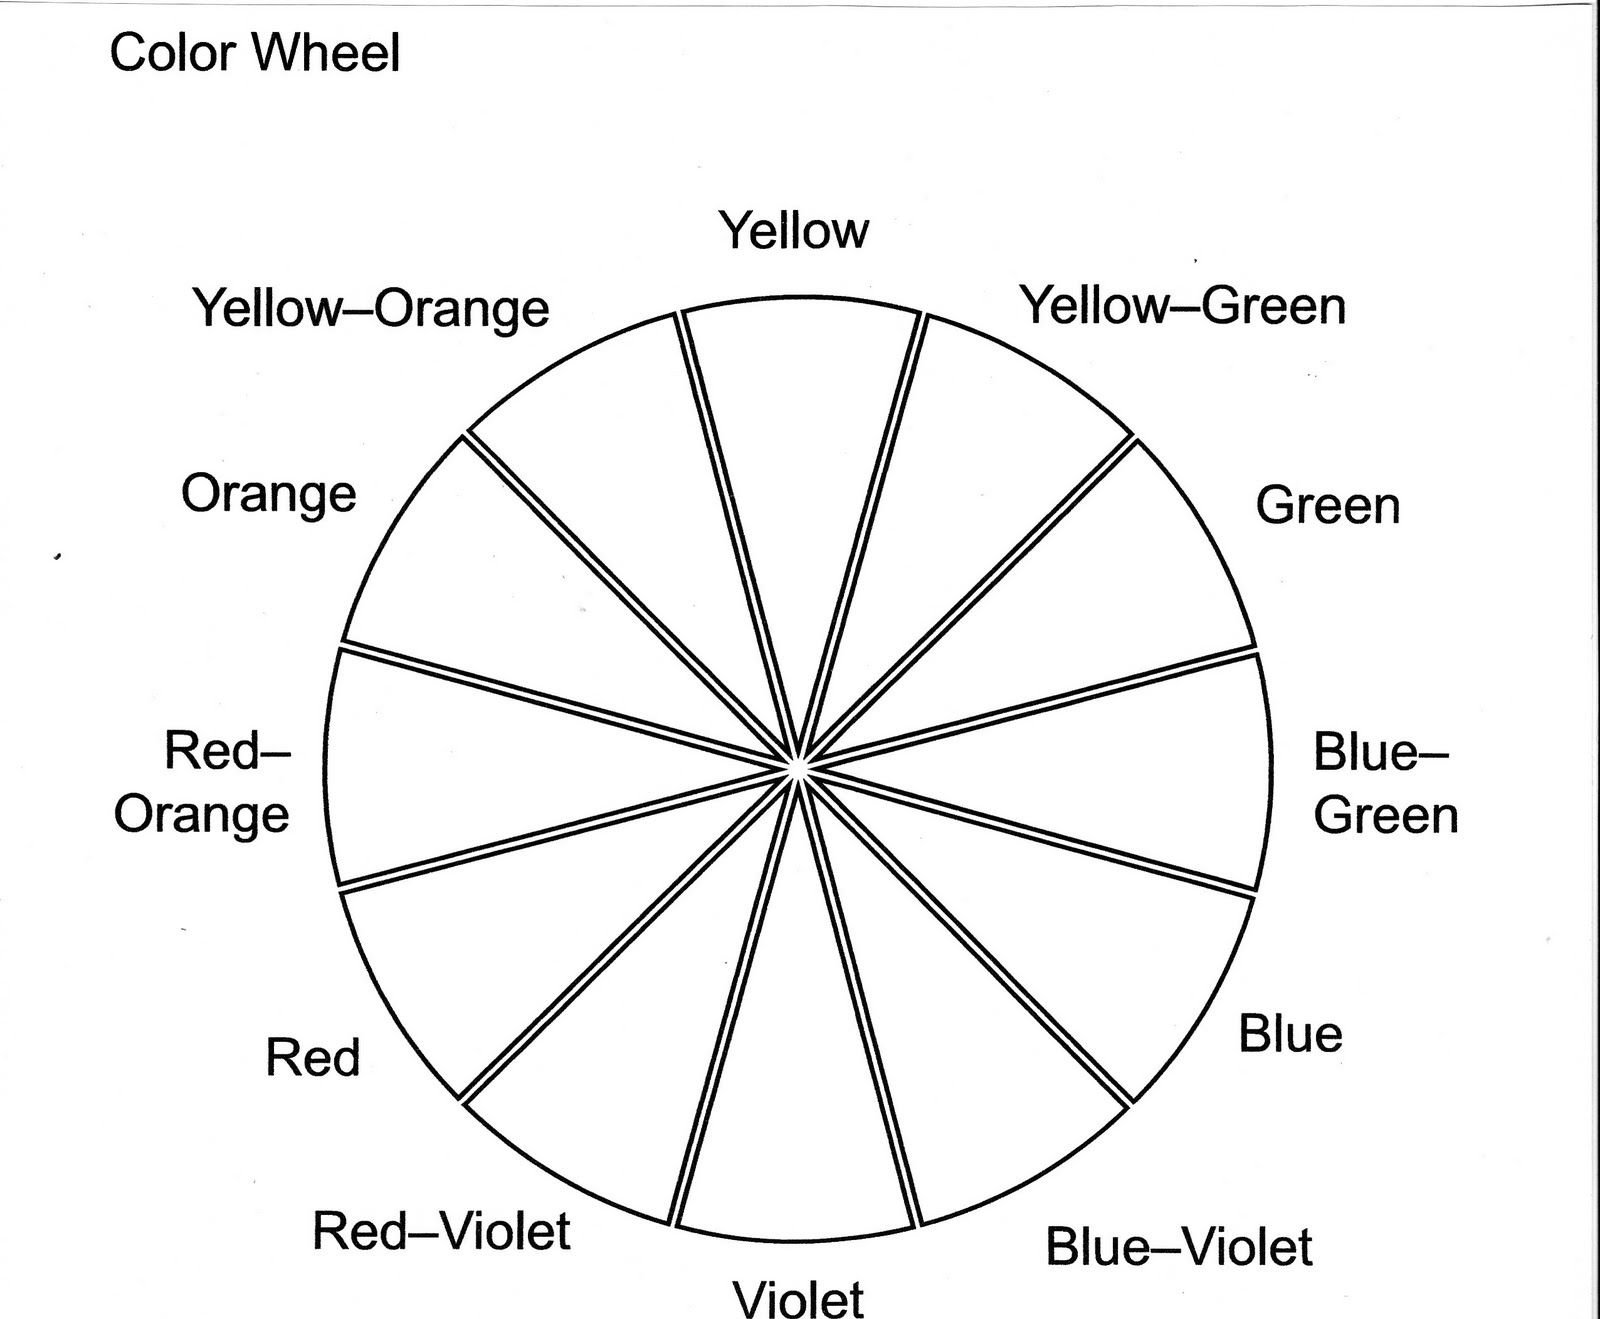 Color Wheel Worksheet Printable | Life Skills | Pinterest | Color ...